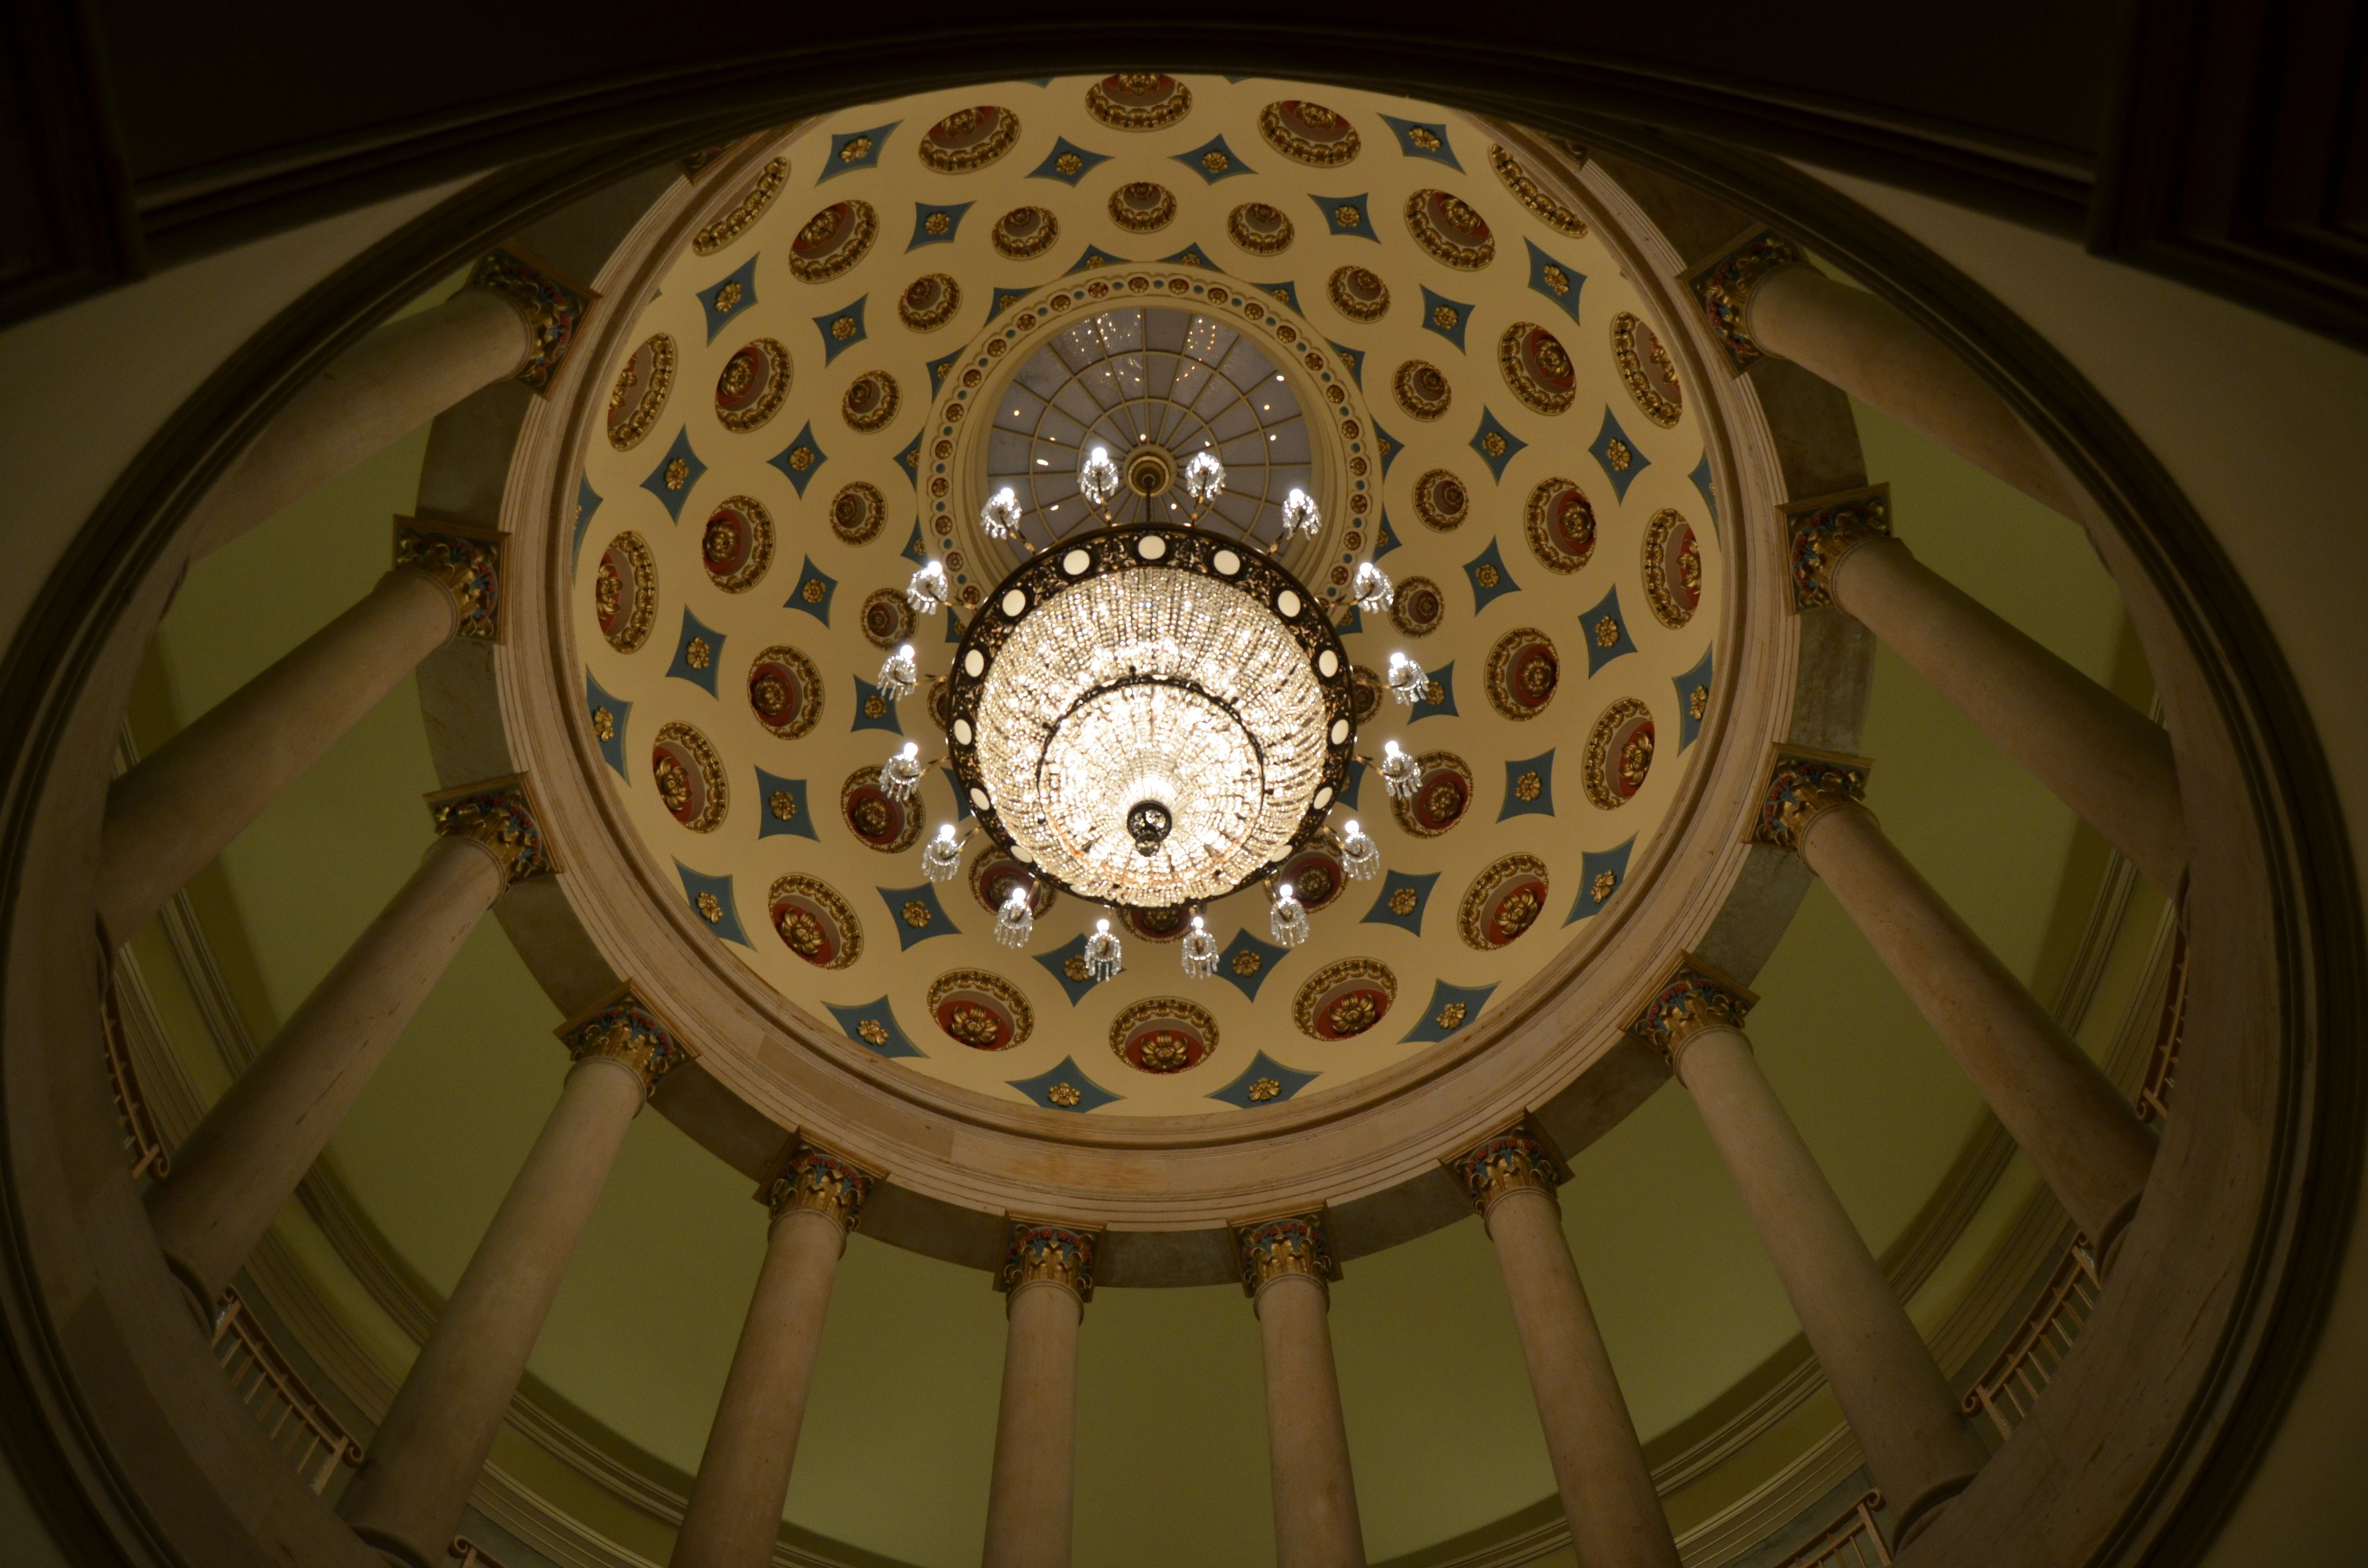 Another beautiful dome in the US capital building